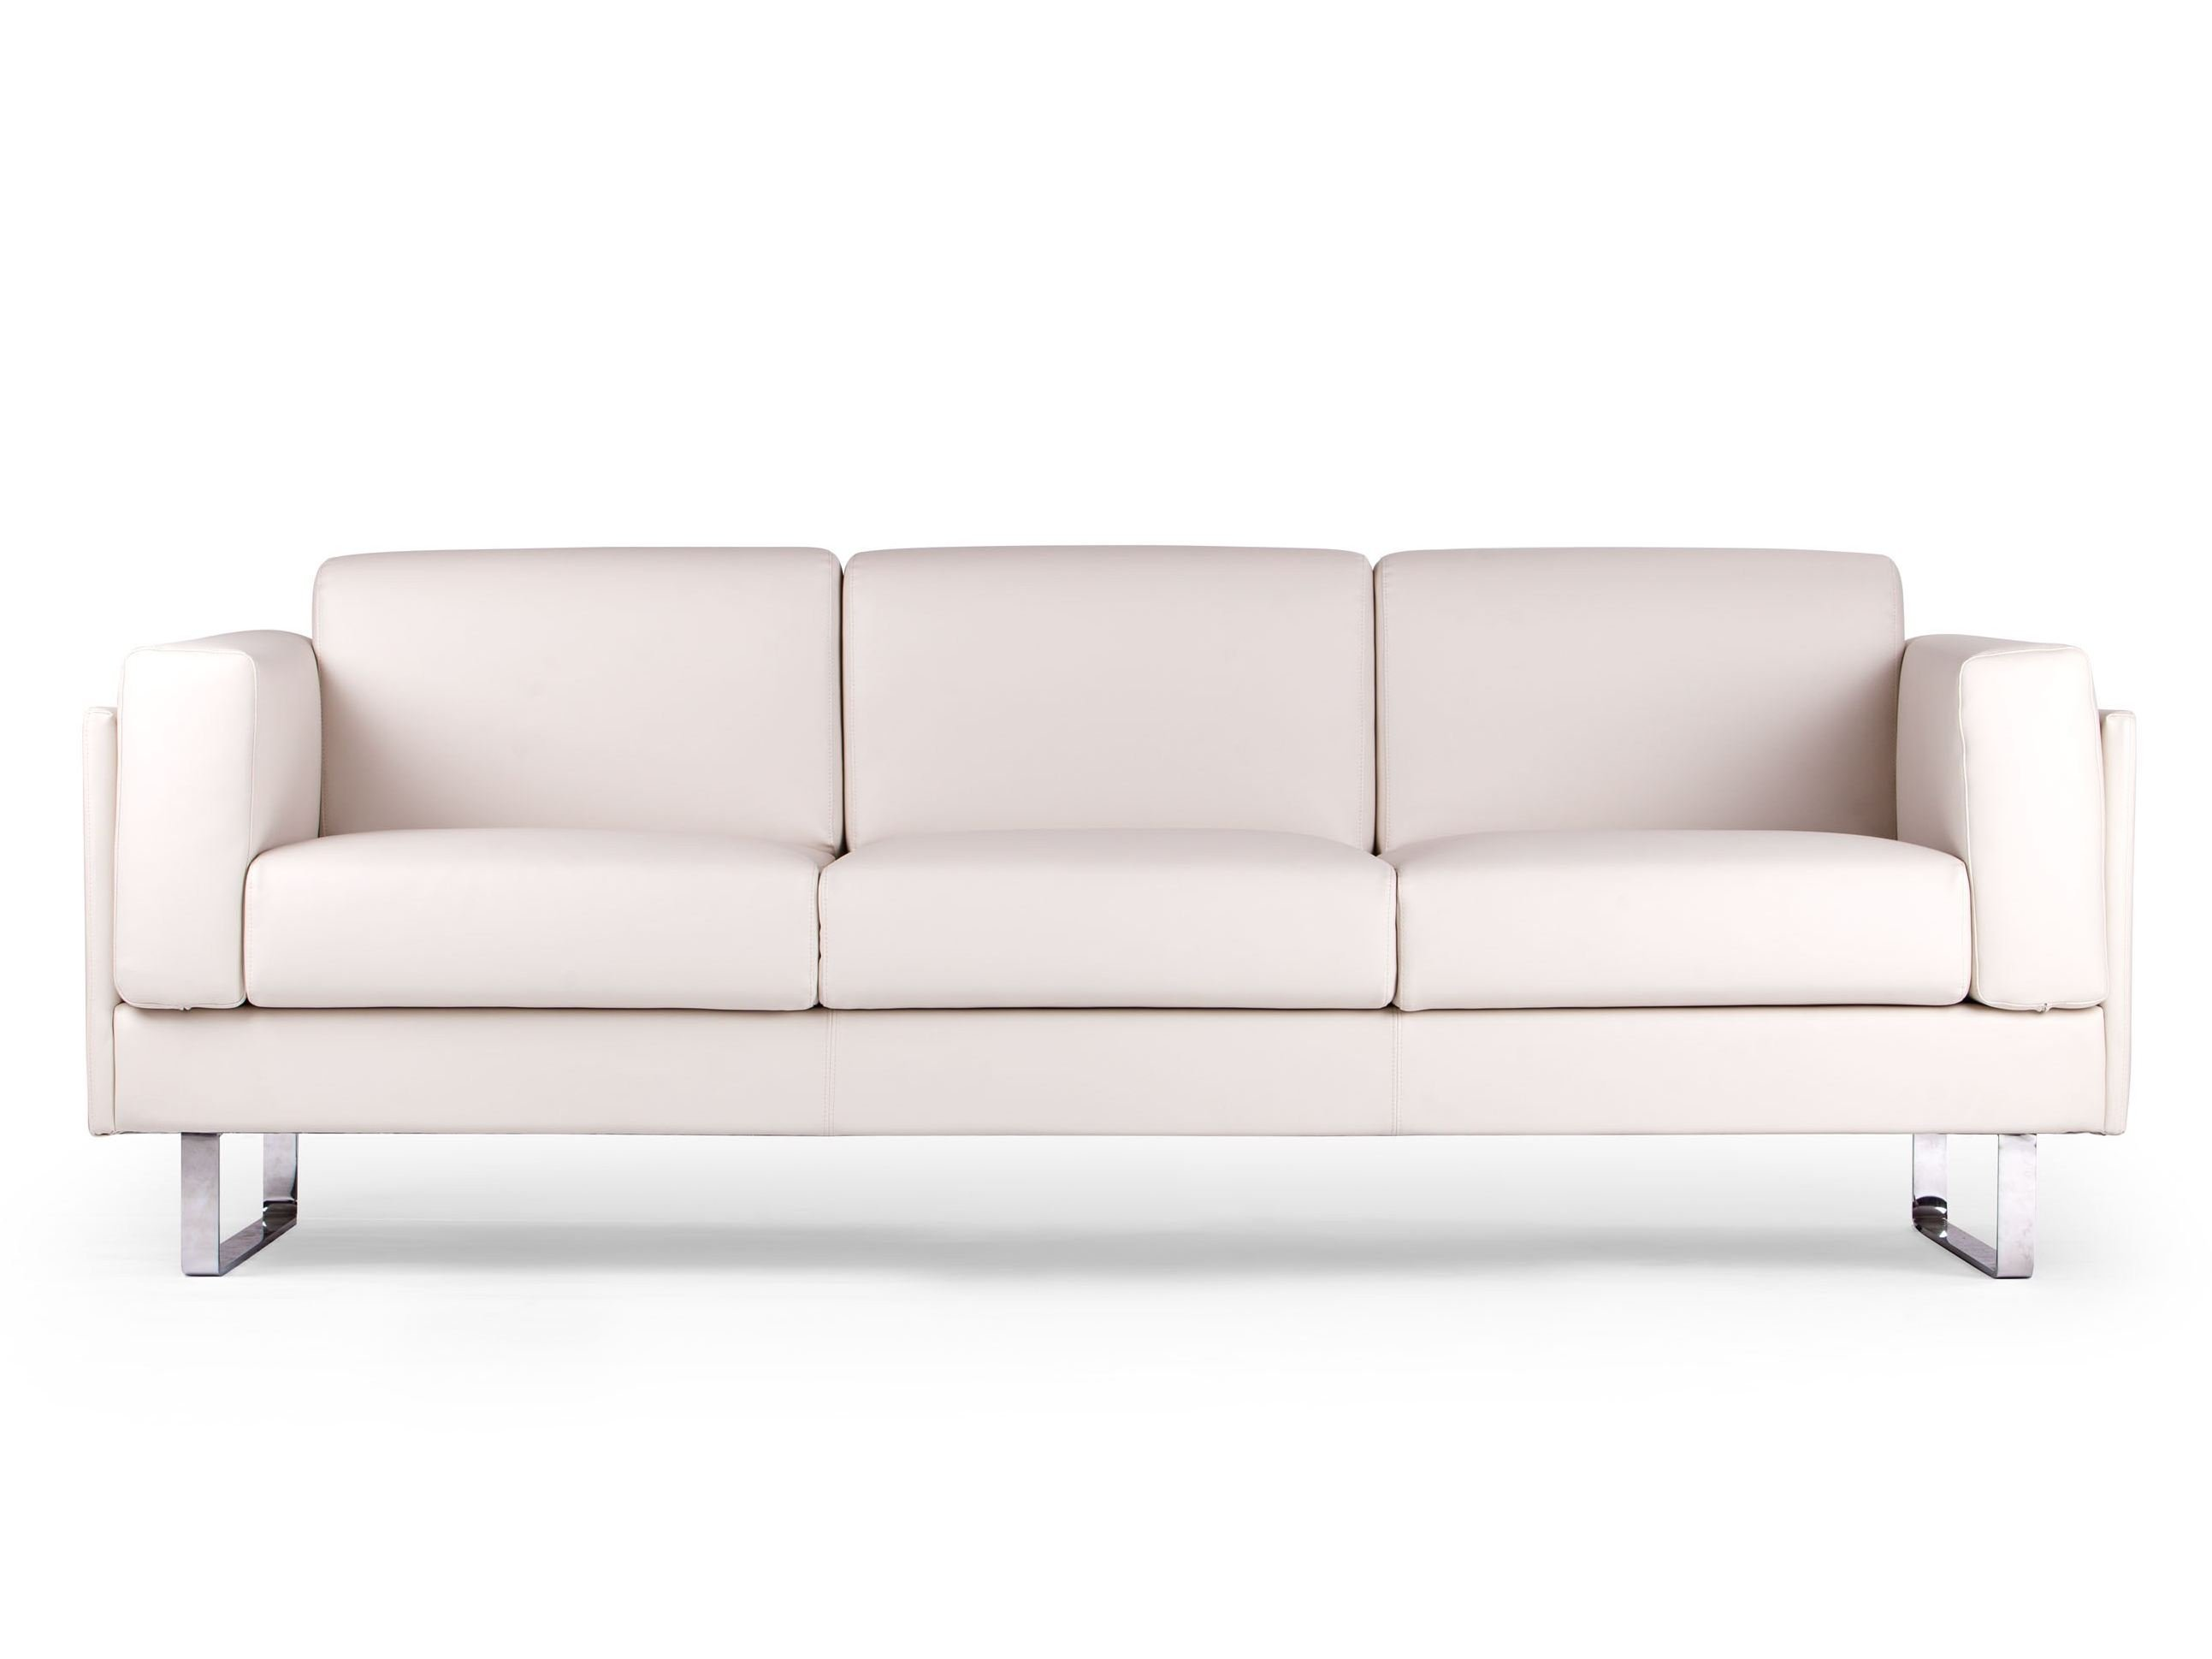 Cab 3 seater sofa by true design design d flux for 3 seater sofa